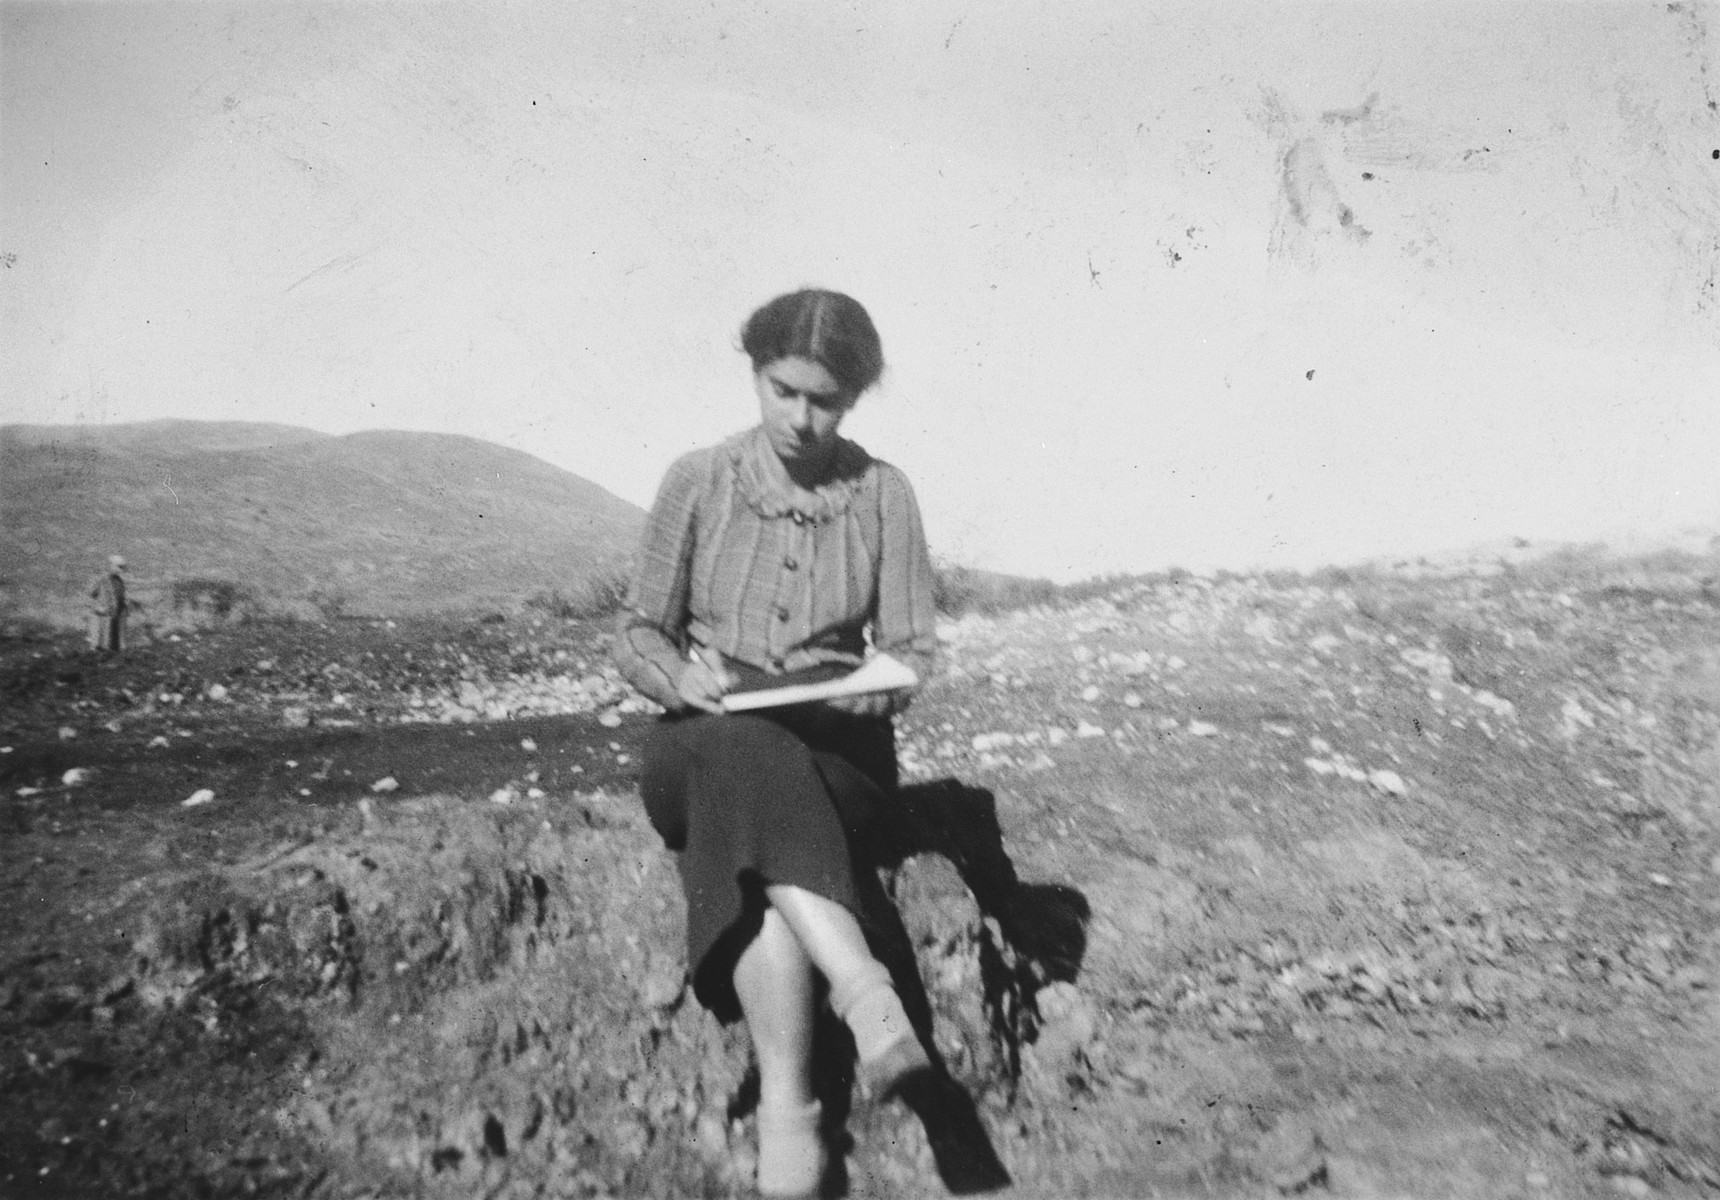 Artist Esther Lurie sketches on the hills outside Beit Alfa in the Galilee.